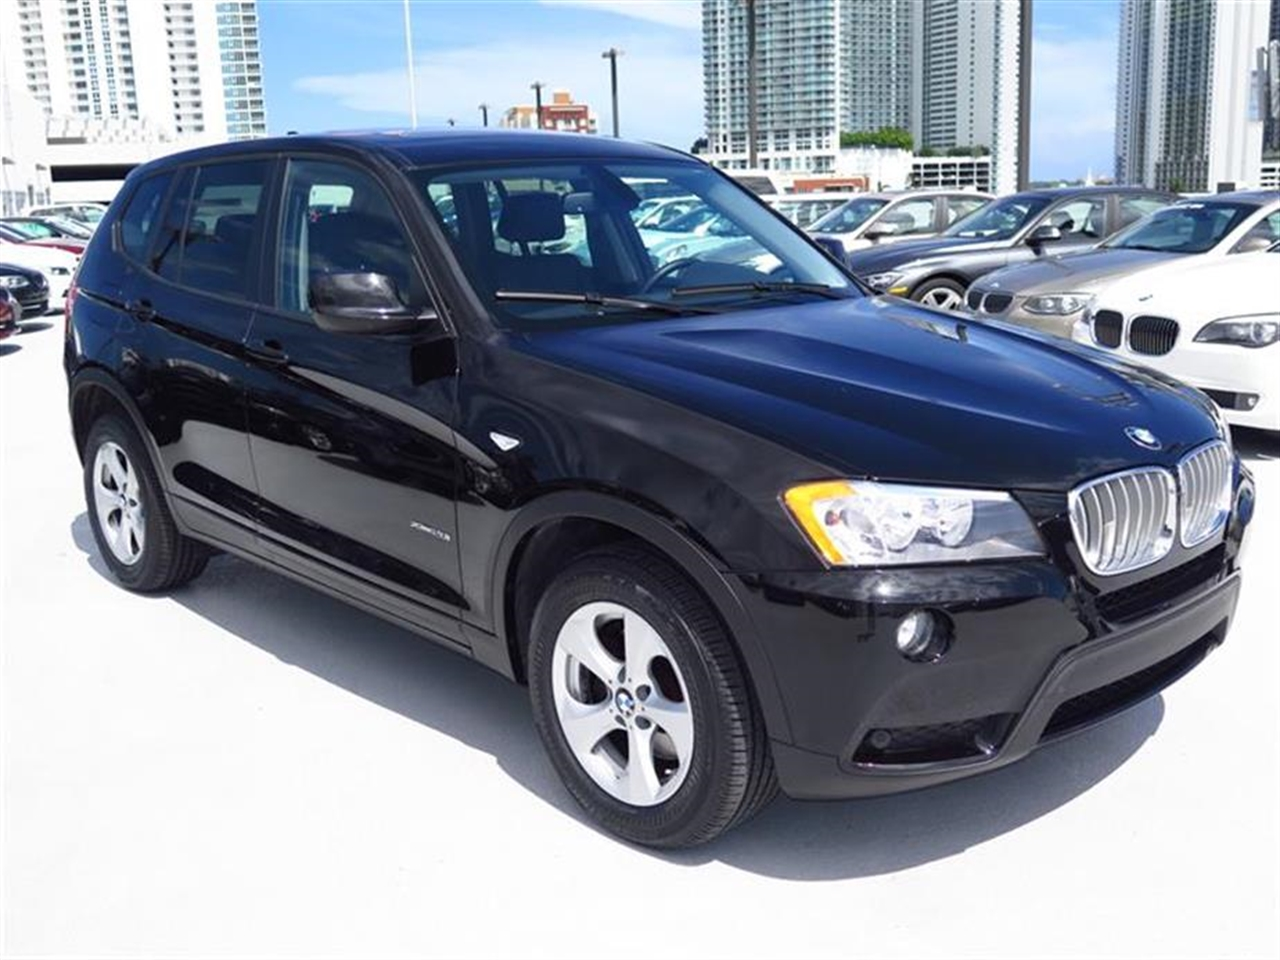 2011 BMW X3 AWD 4dr 28i 20846 miles 3-spoke leather-wrapped multi-function sport steering wheel wi